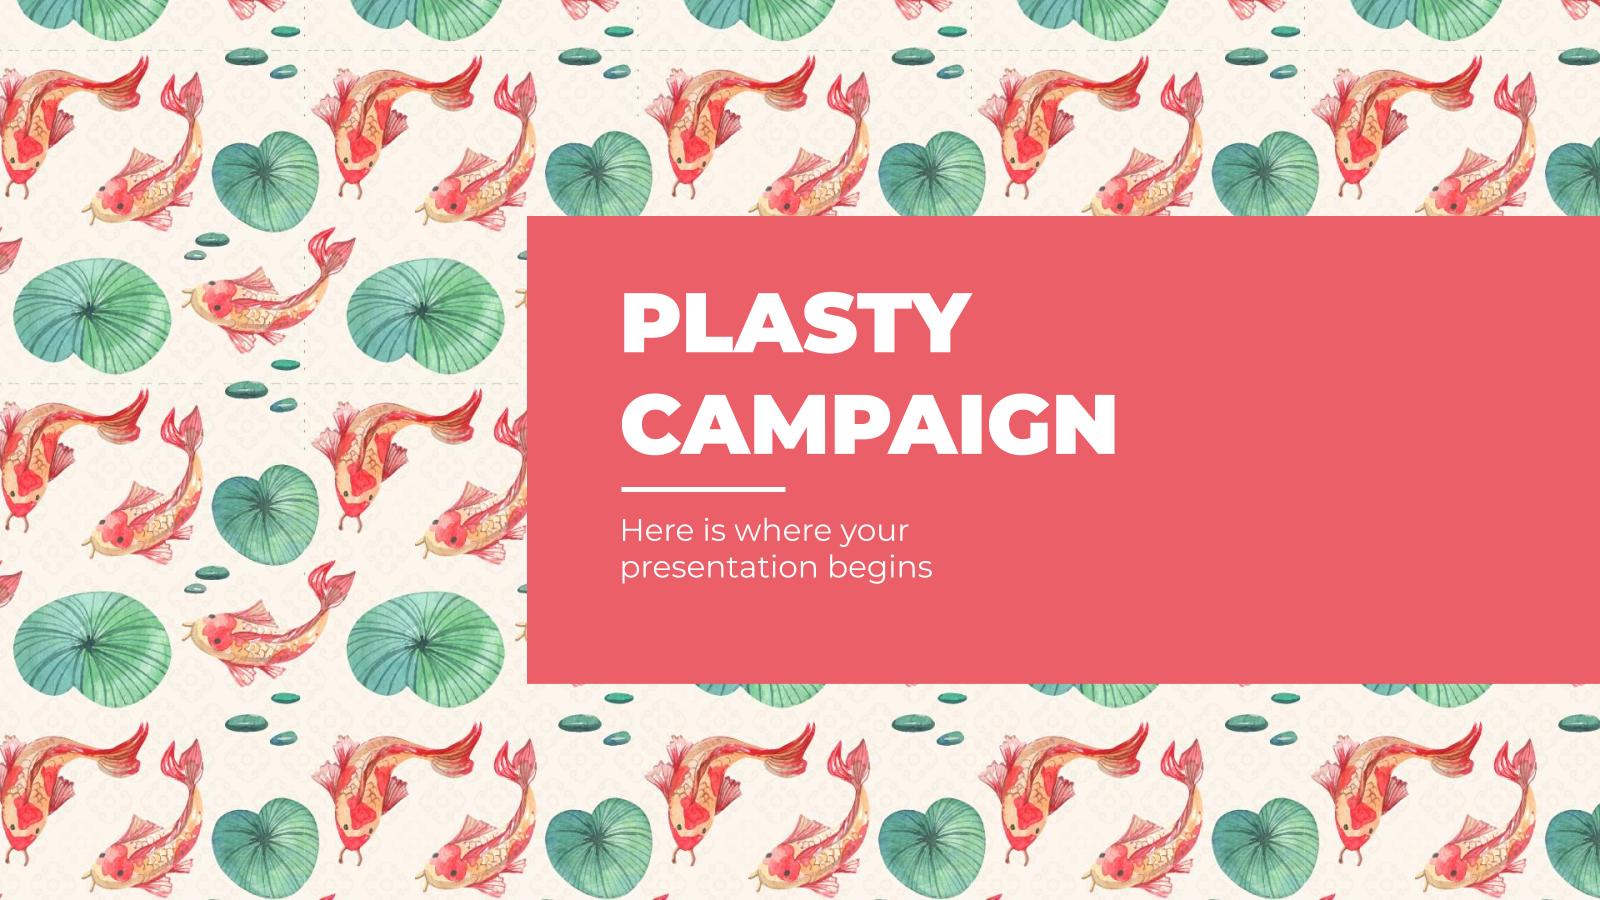 Plasty Campaign presentation template